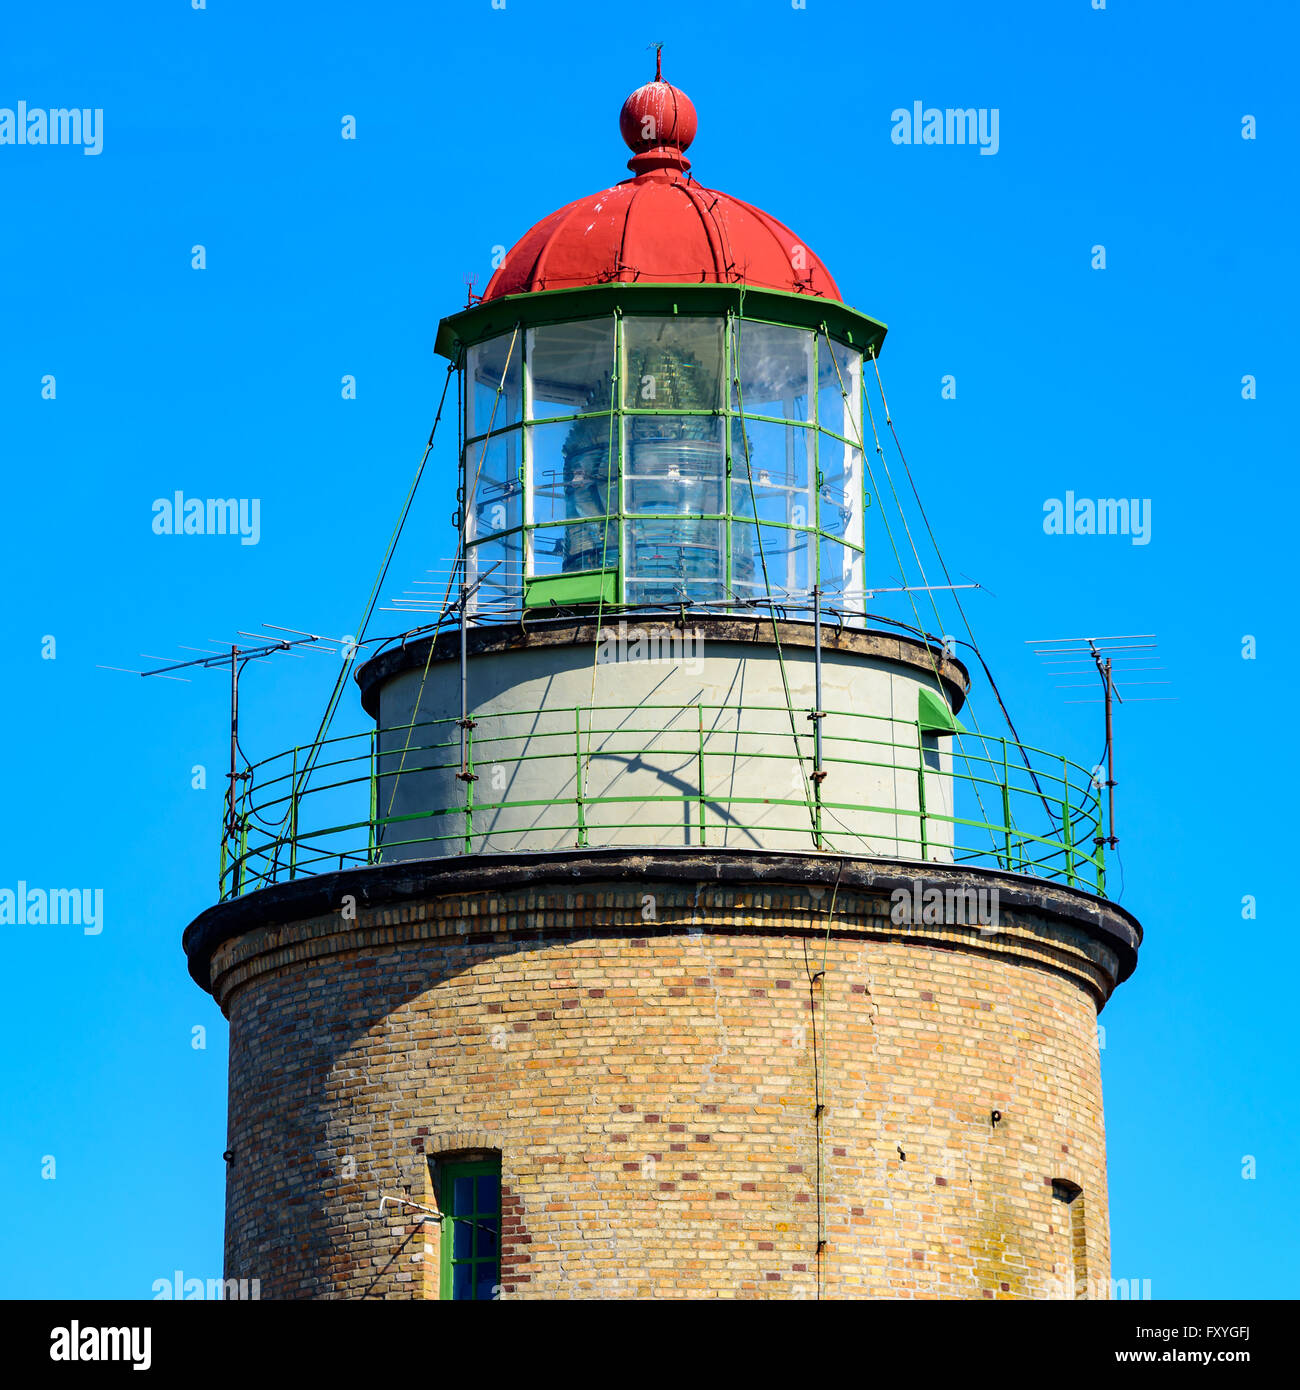 Falsterbo, Sweden - April 11, 2016: Falsterbo lighthouse as seen from the southwest on a sunny spring day. - Stock Image